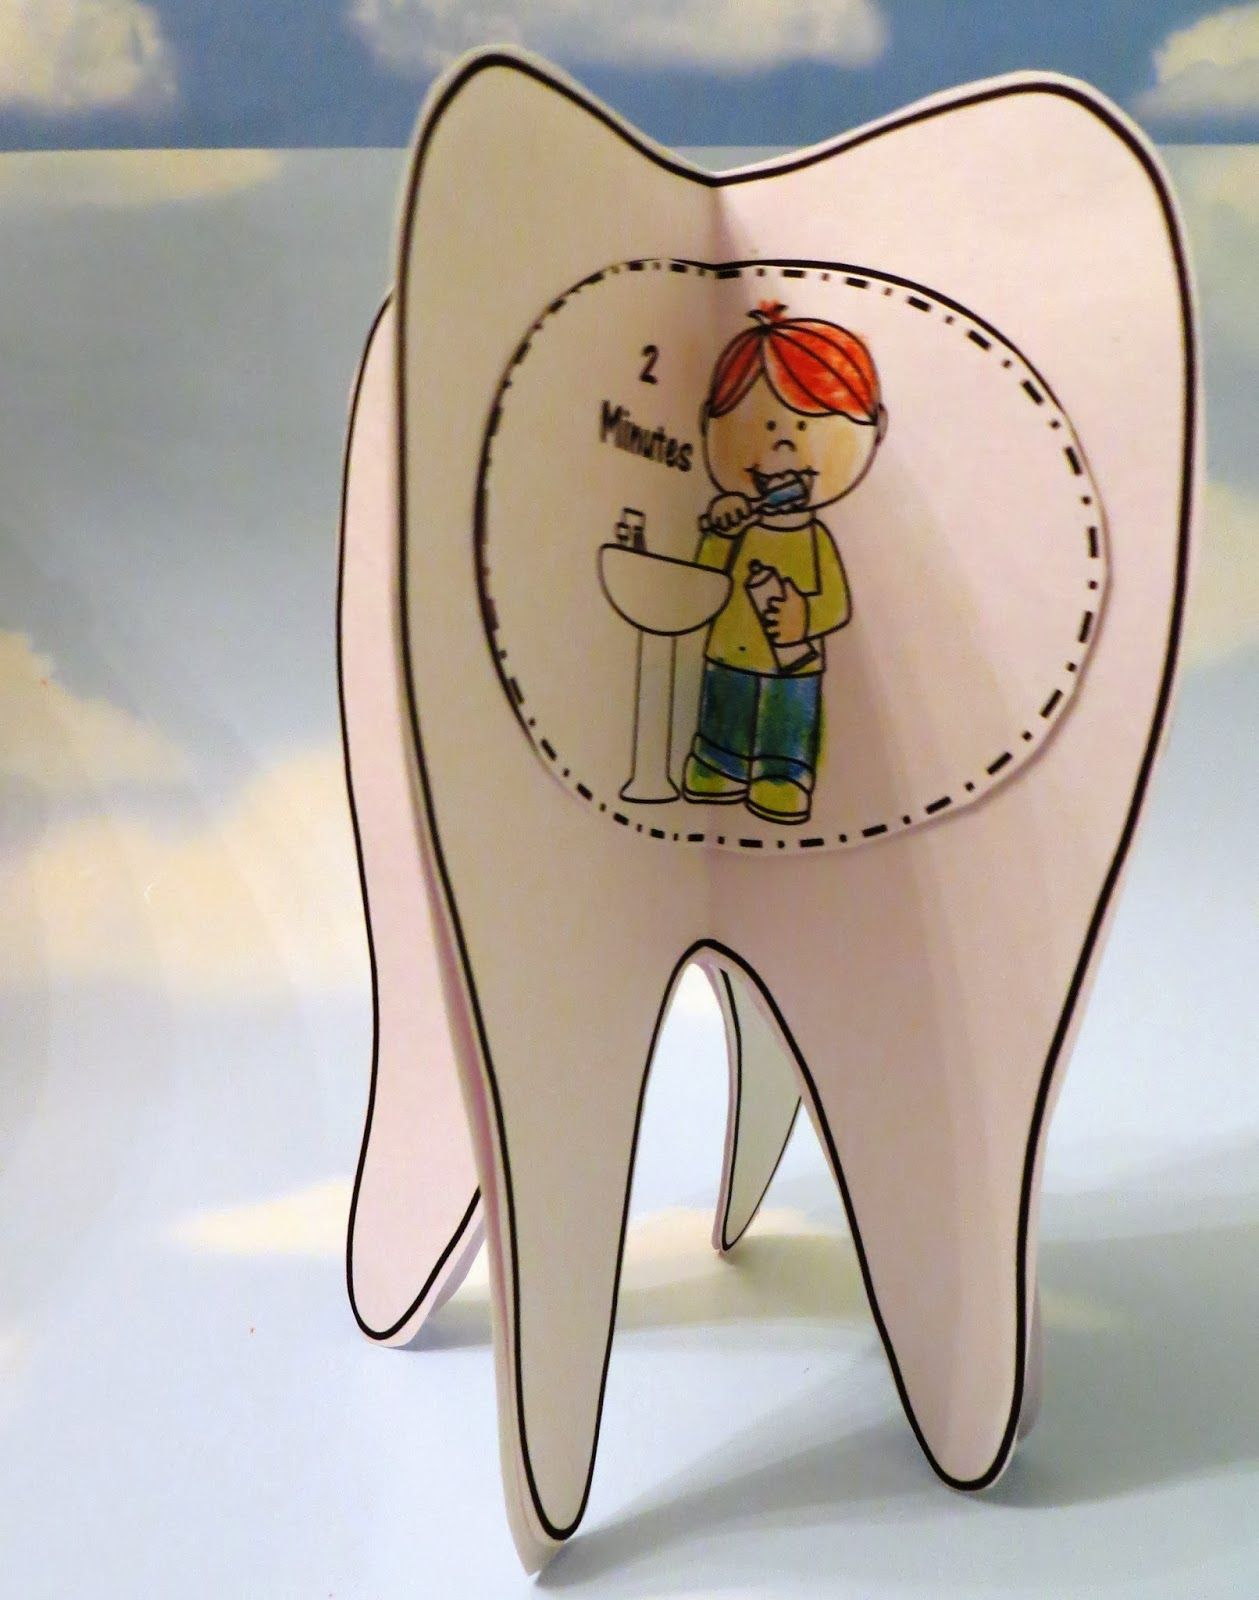 Tooth Brushing Craft For Dental Health Month